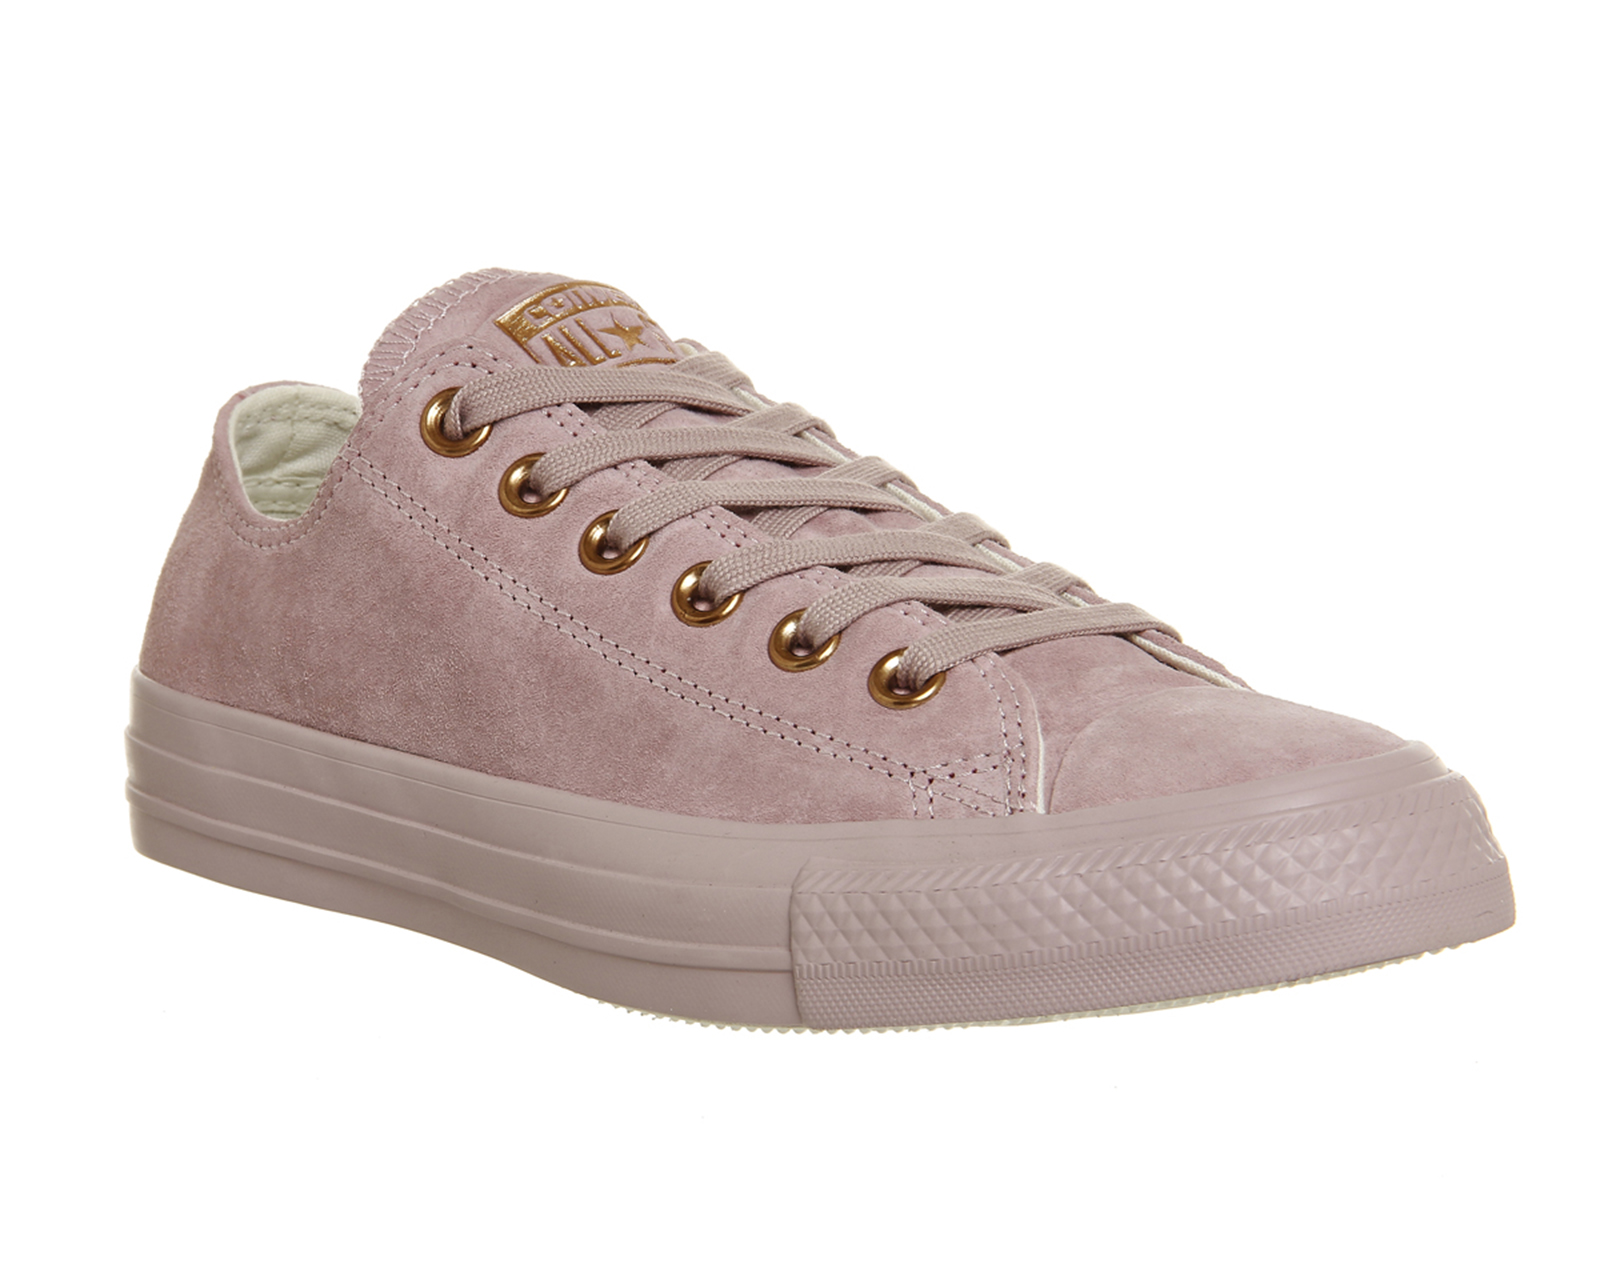 converse rose gold suede